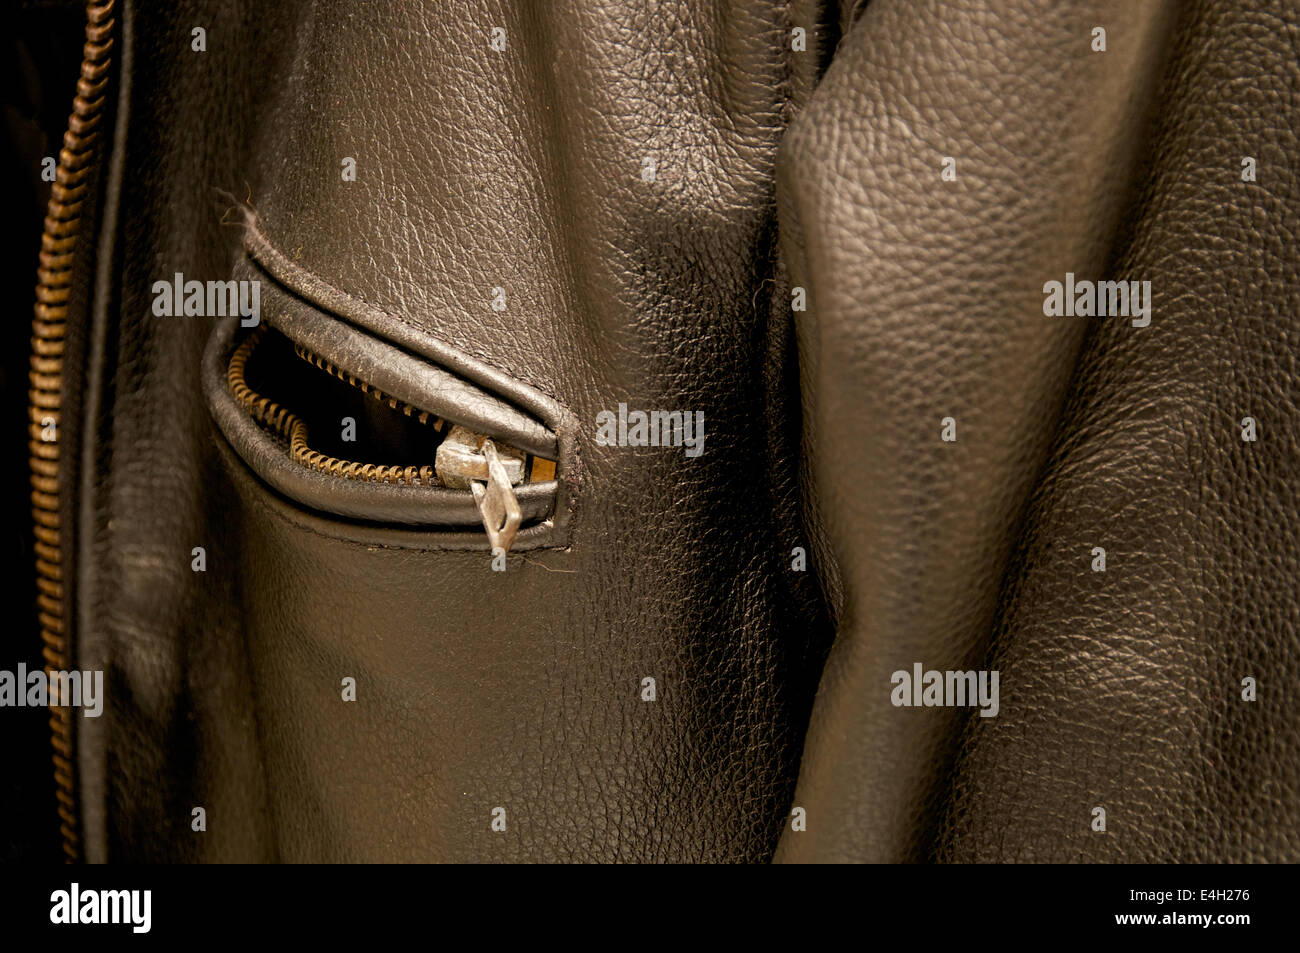 A black leather jacket fills the frame with focus on old rusted zippered pocket. - Stock Image